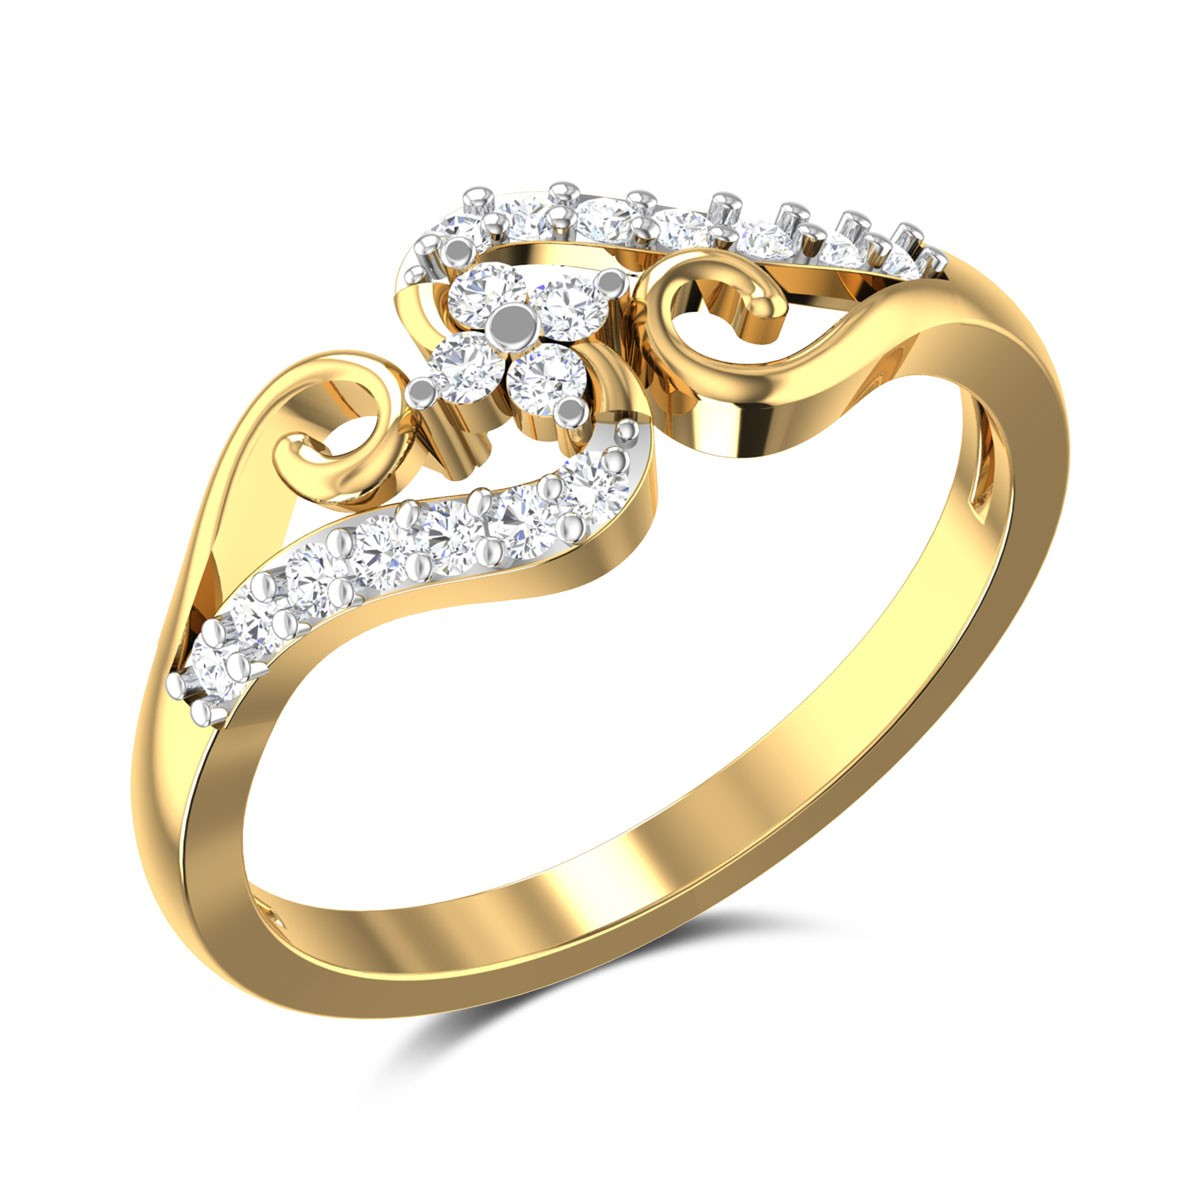 Lillyann Diamond Ring